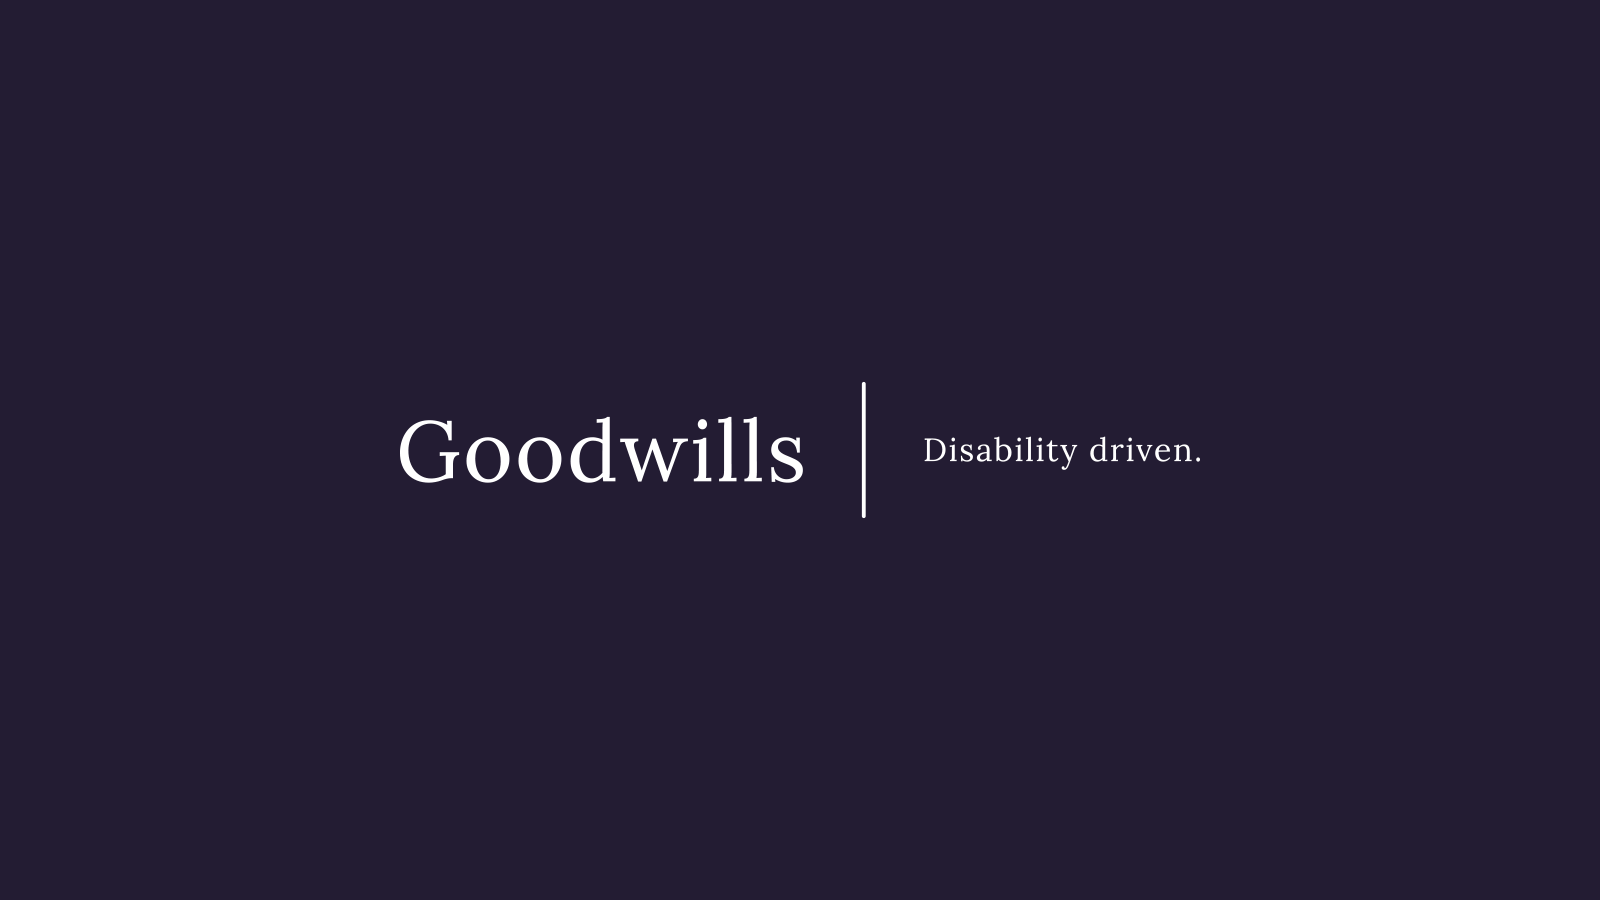 Goodwills Branding Design